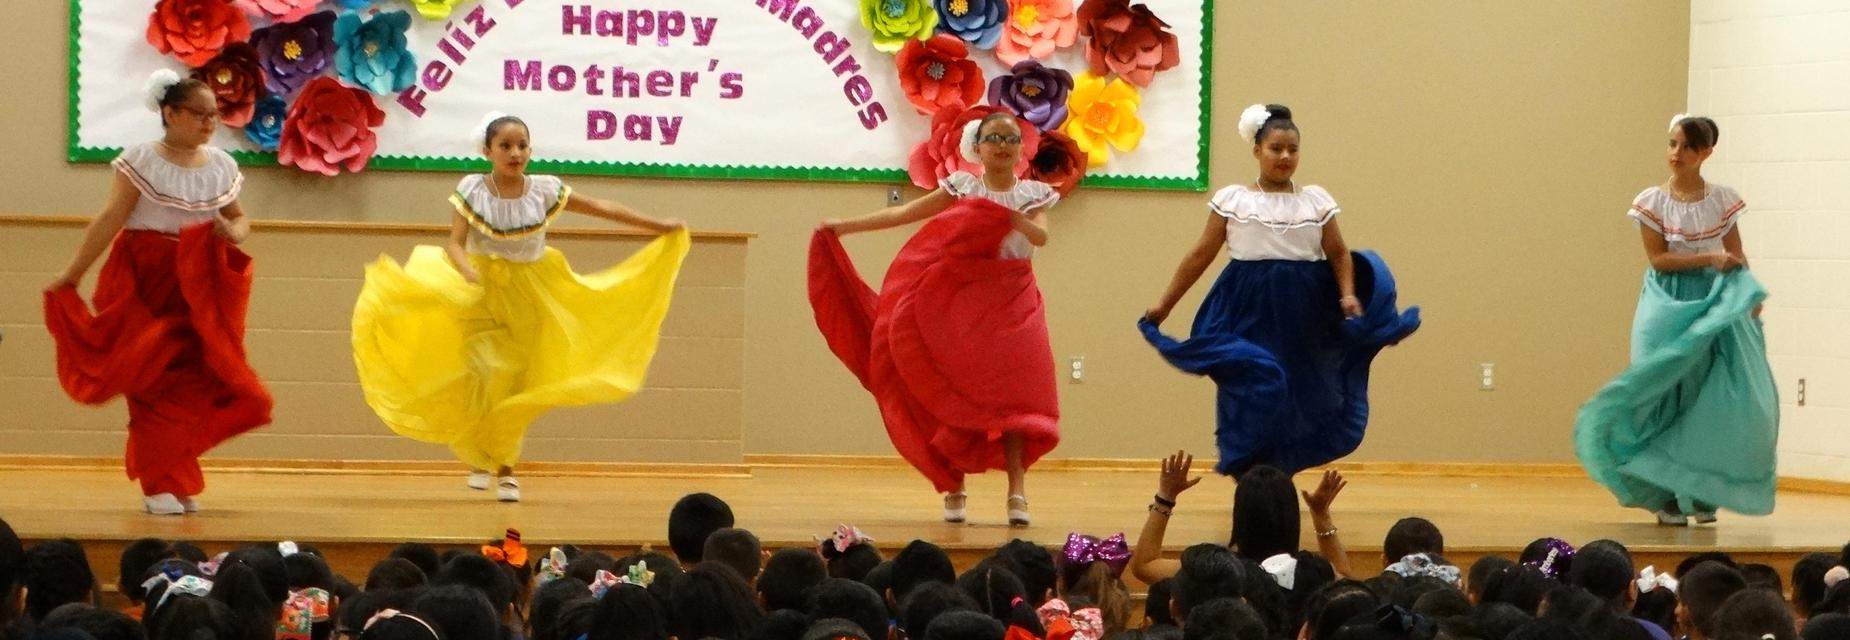 Folklorico girls on stage dancing